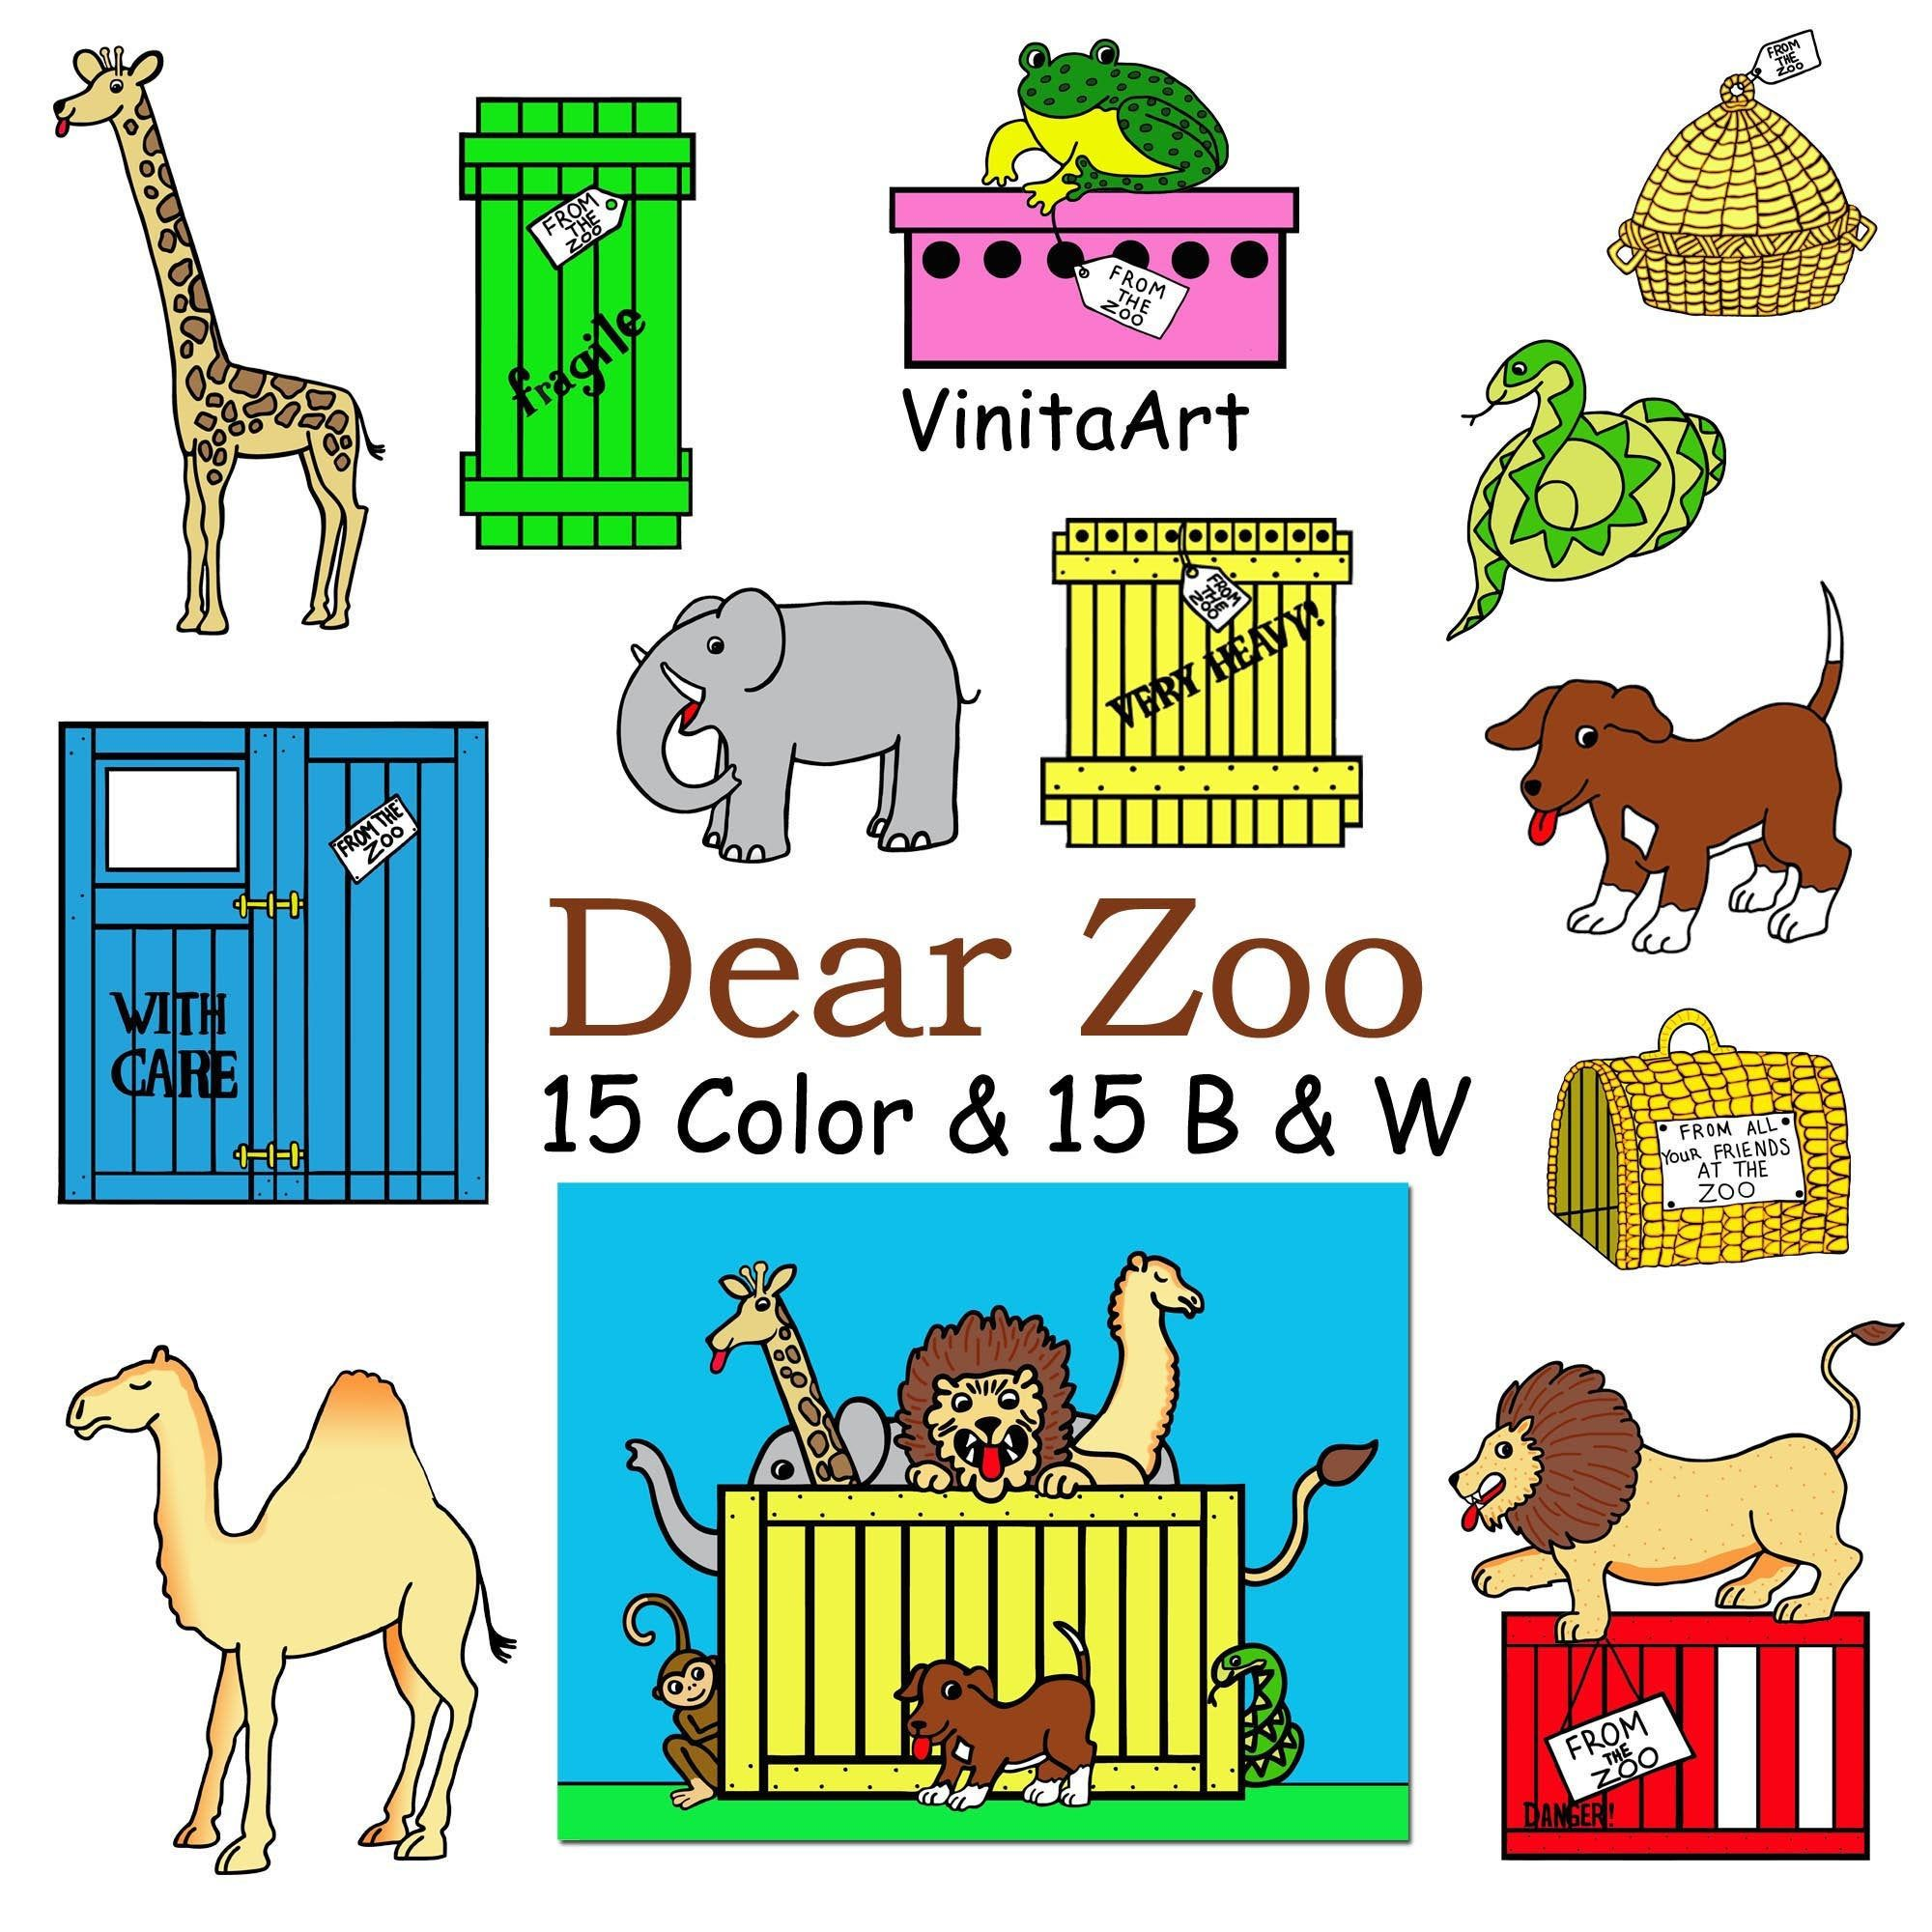 Dear Zoo Storybook Clip Art Printable Coloring Pages Etsy In 2021 Dear Zoo Story Books Illustrations Dear Zoo Book